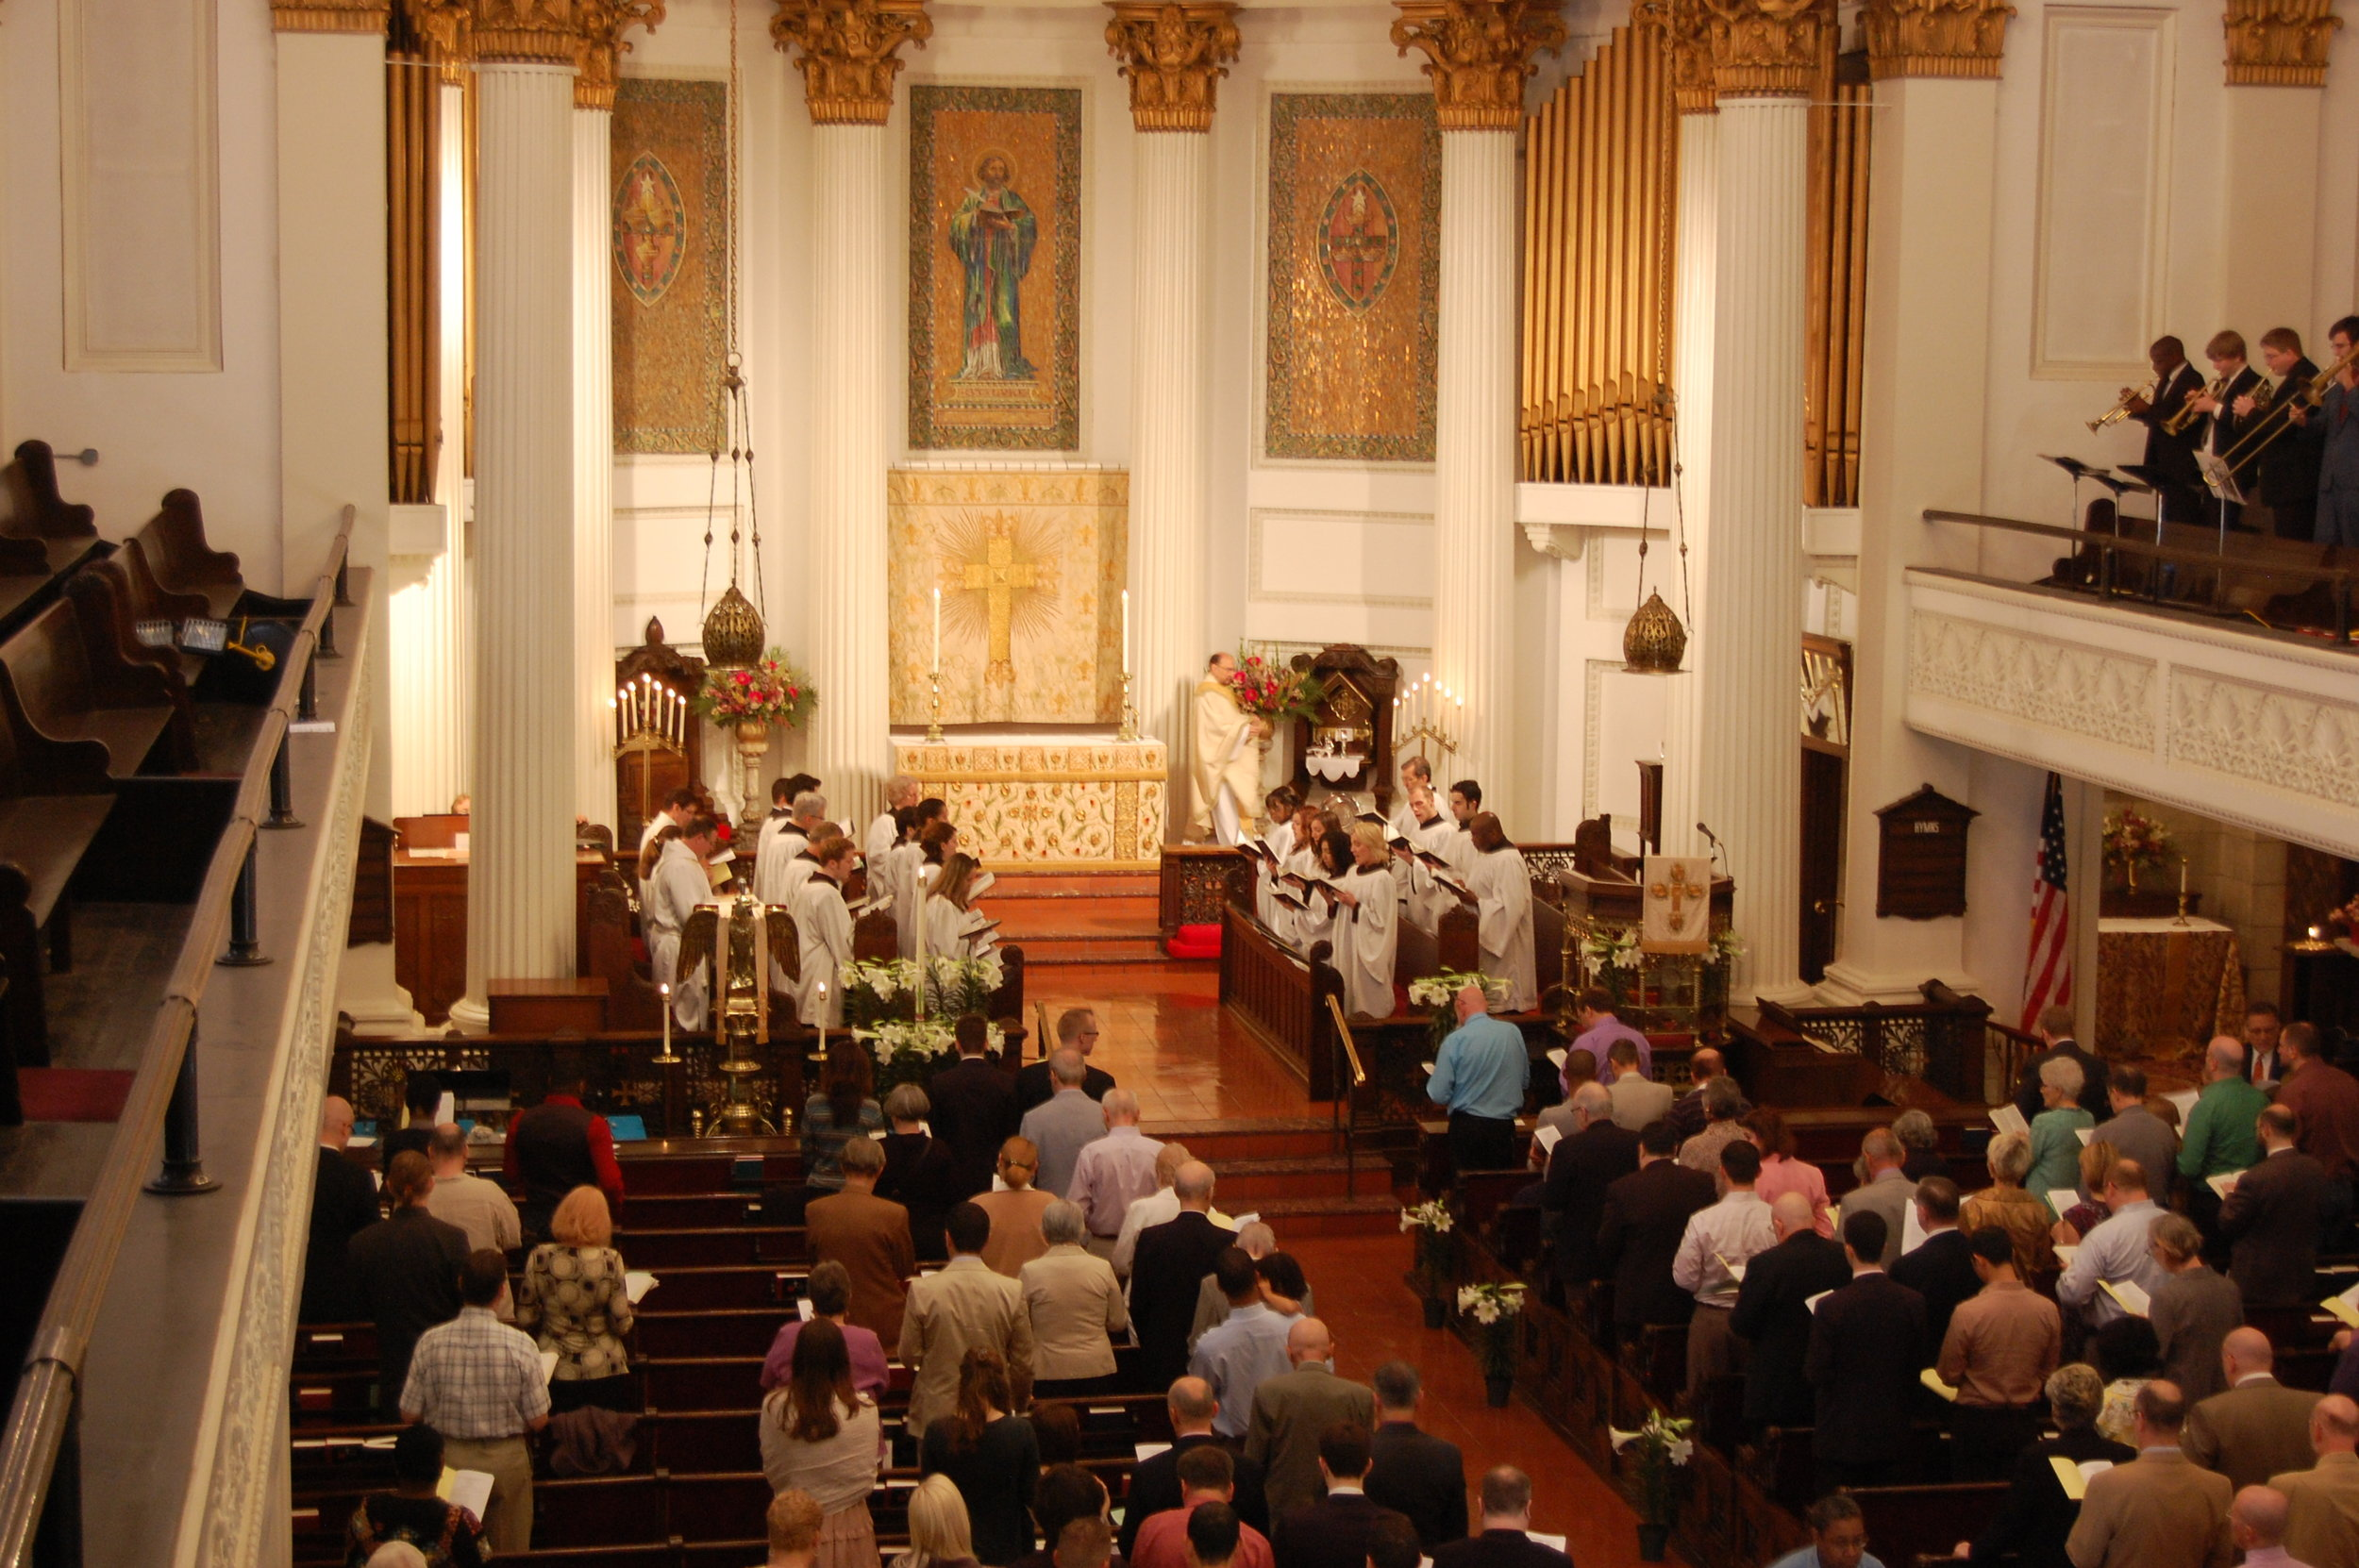 St_luke_epiphany_easter_2011.JPG